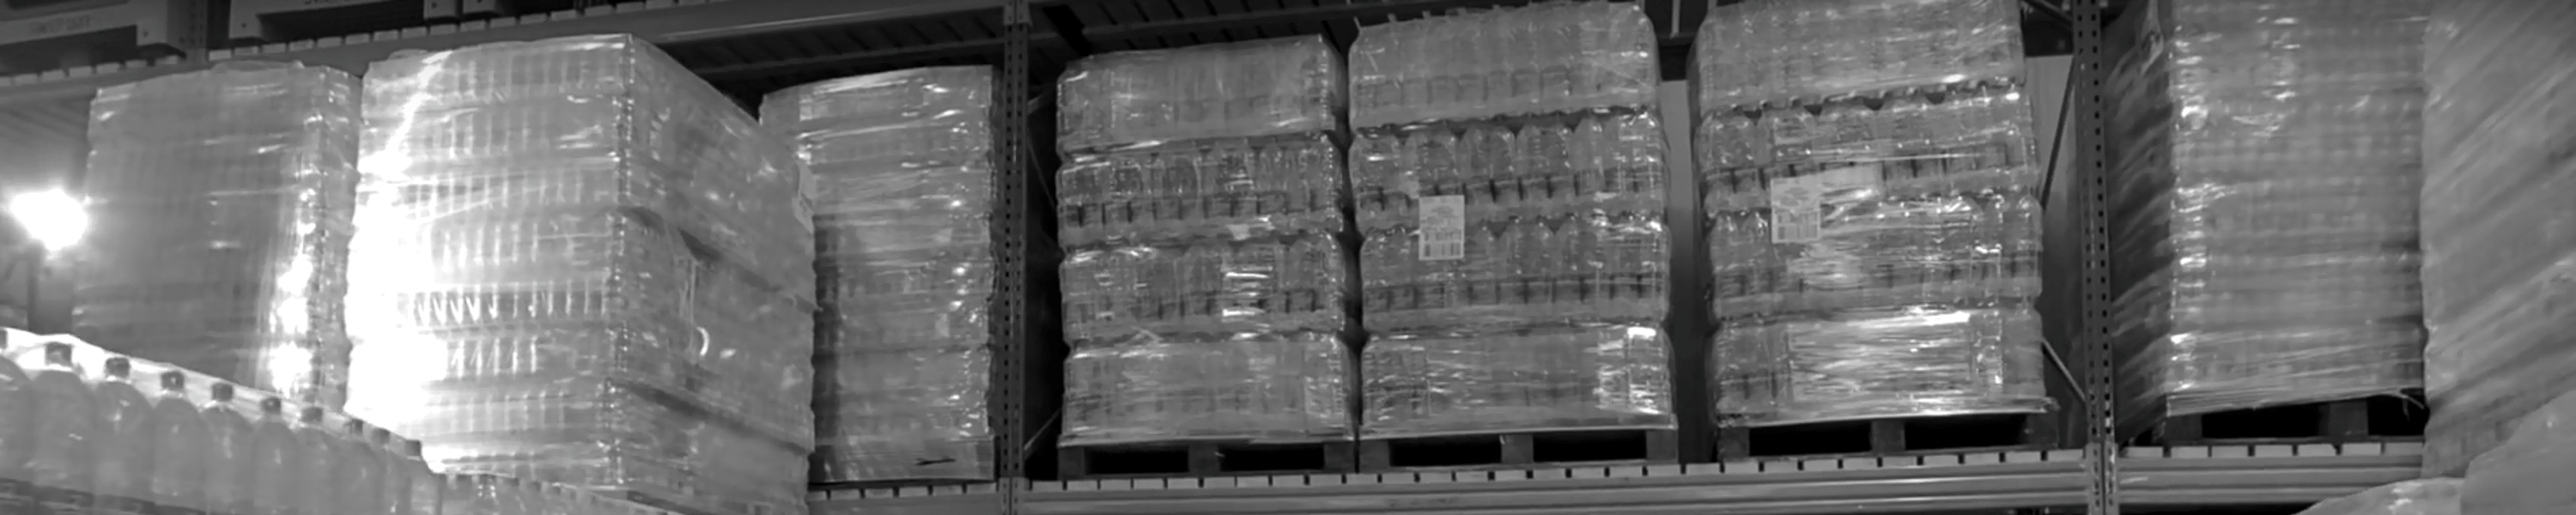 Nationwide Bottled Water Bank